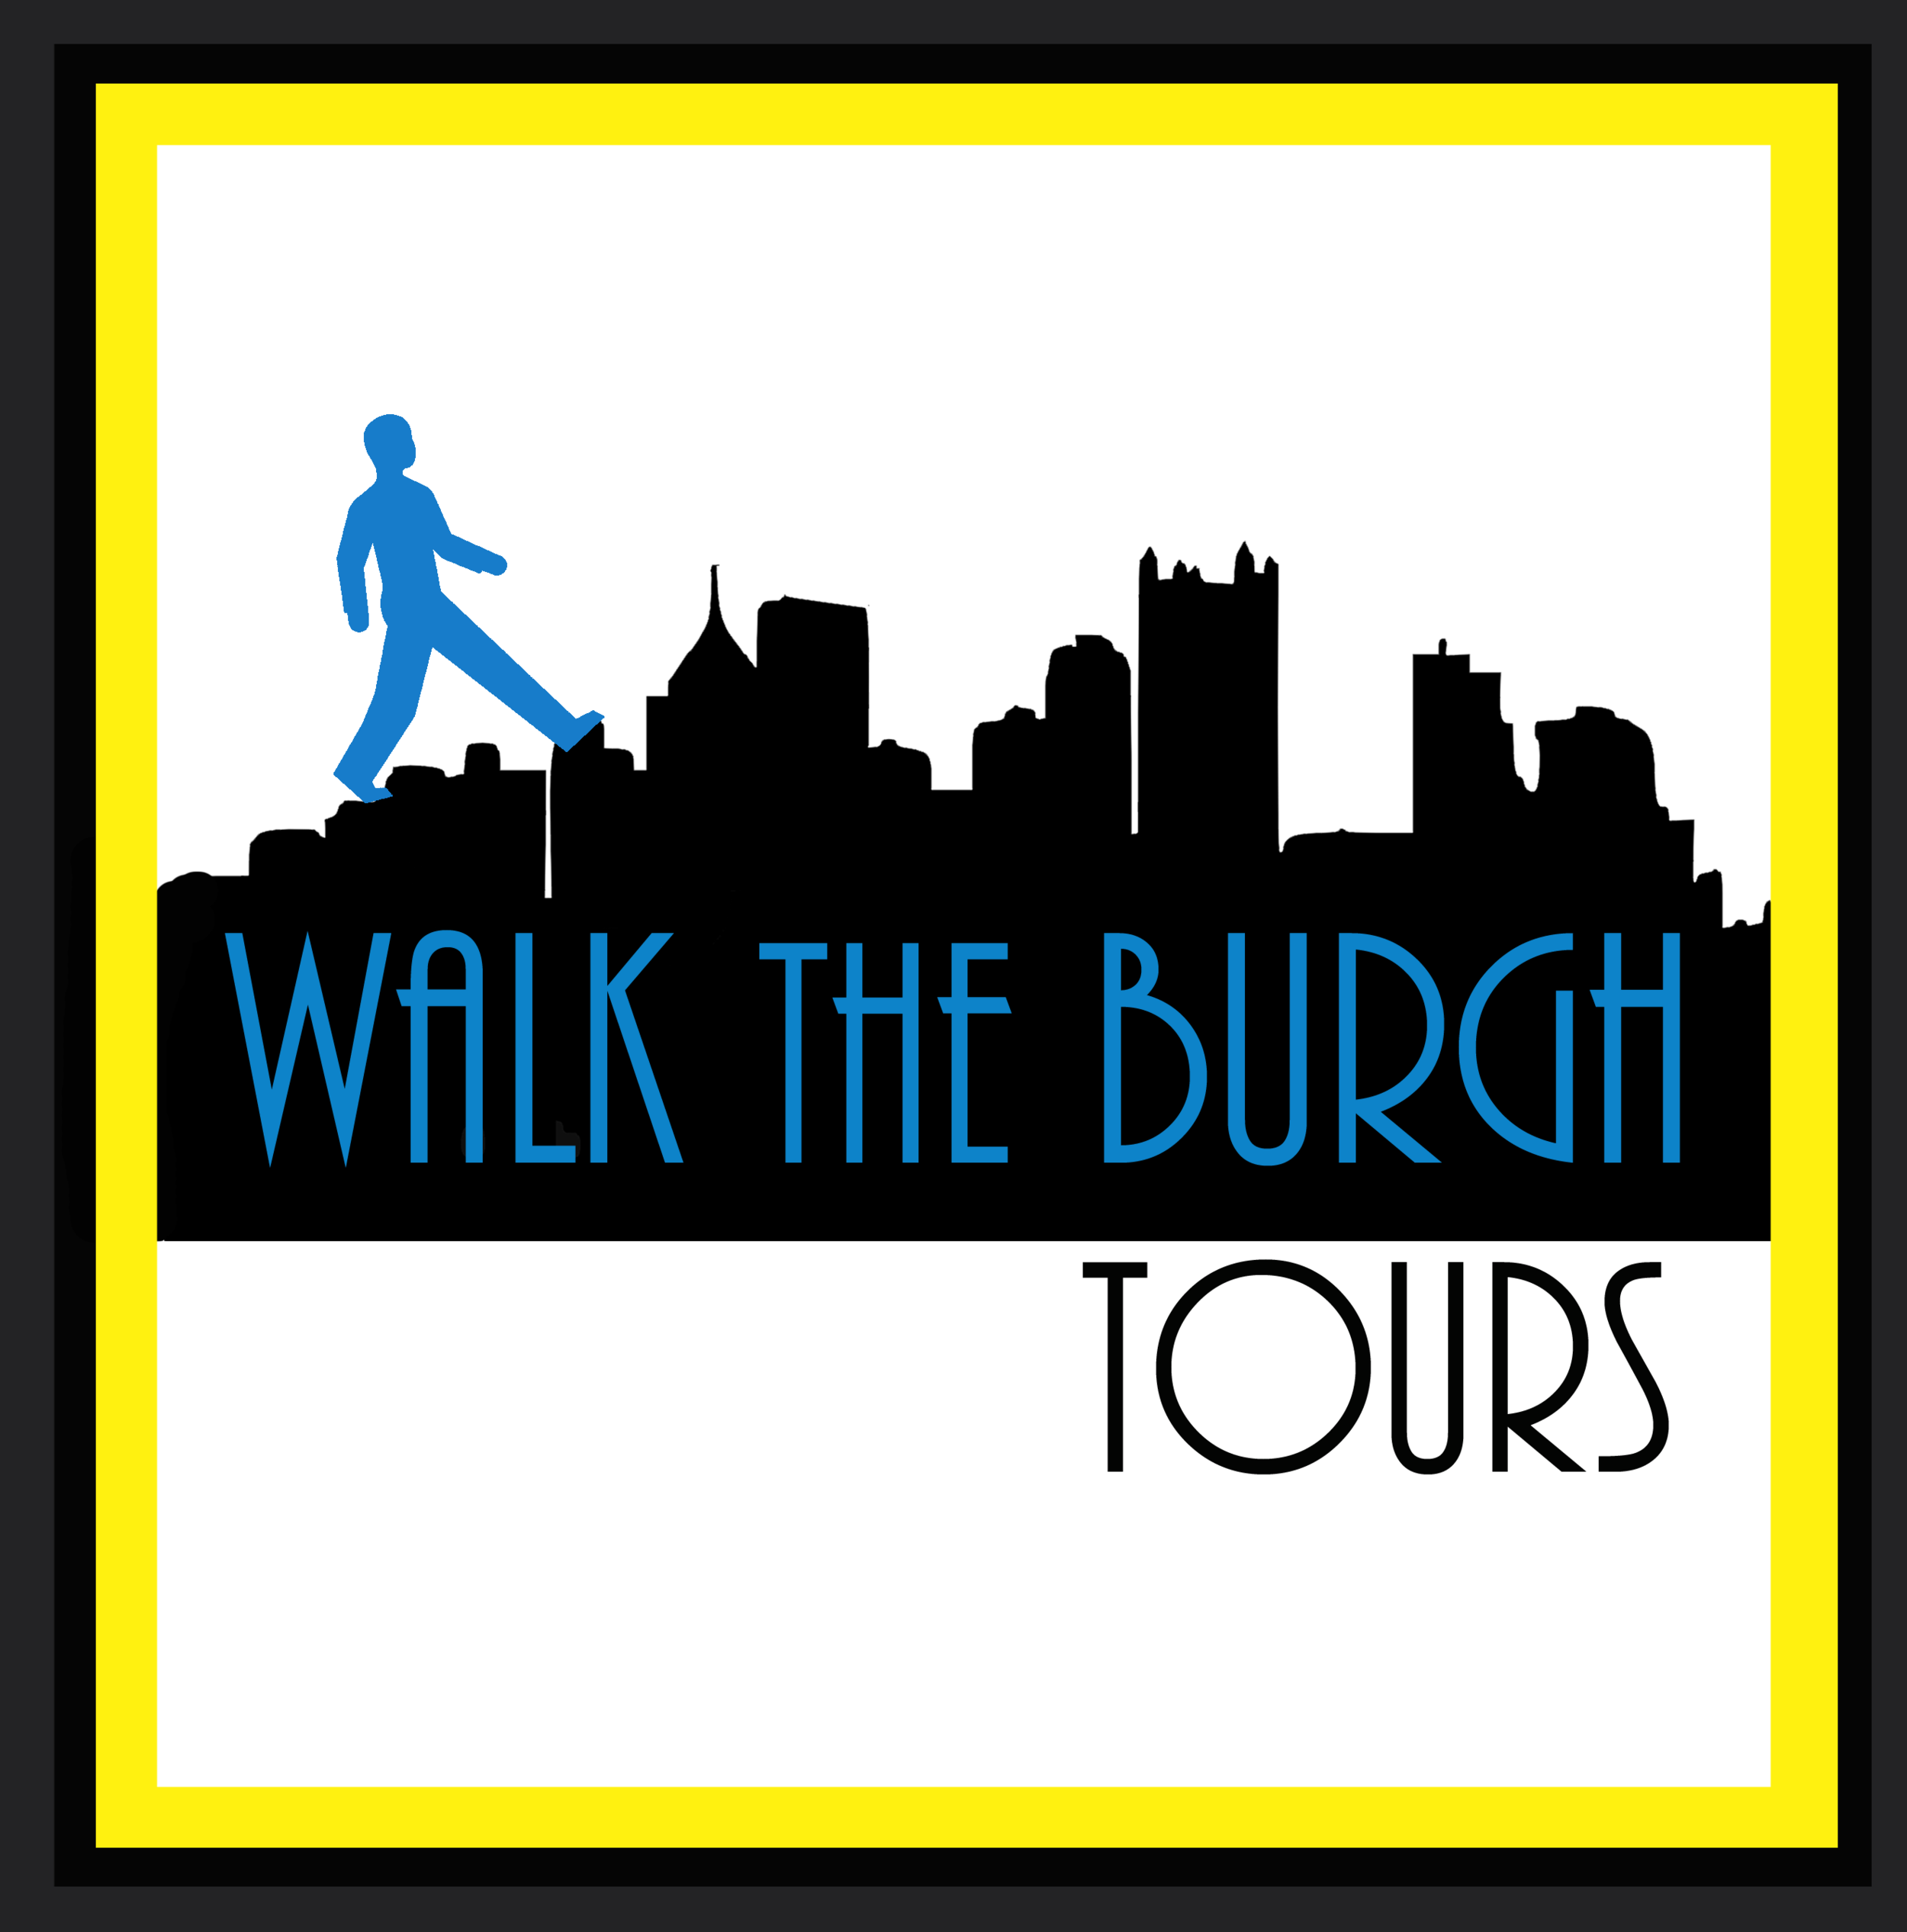 Image courtesy of  Walk the Burgh Tours